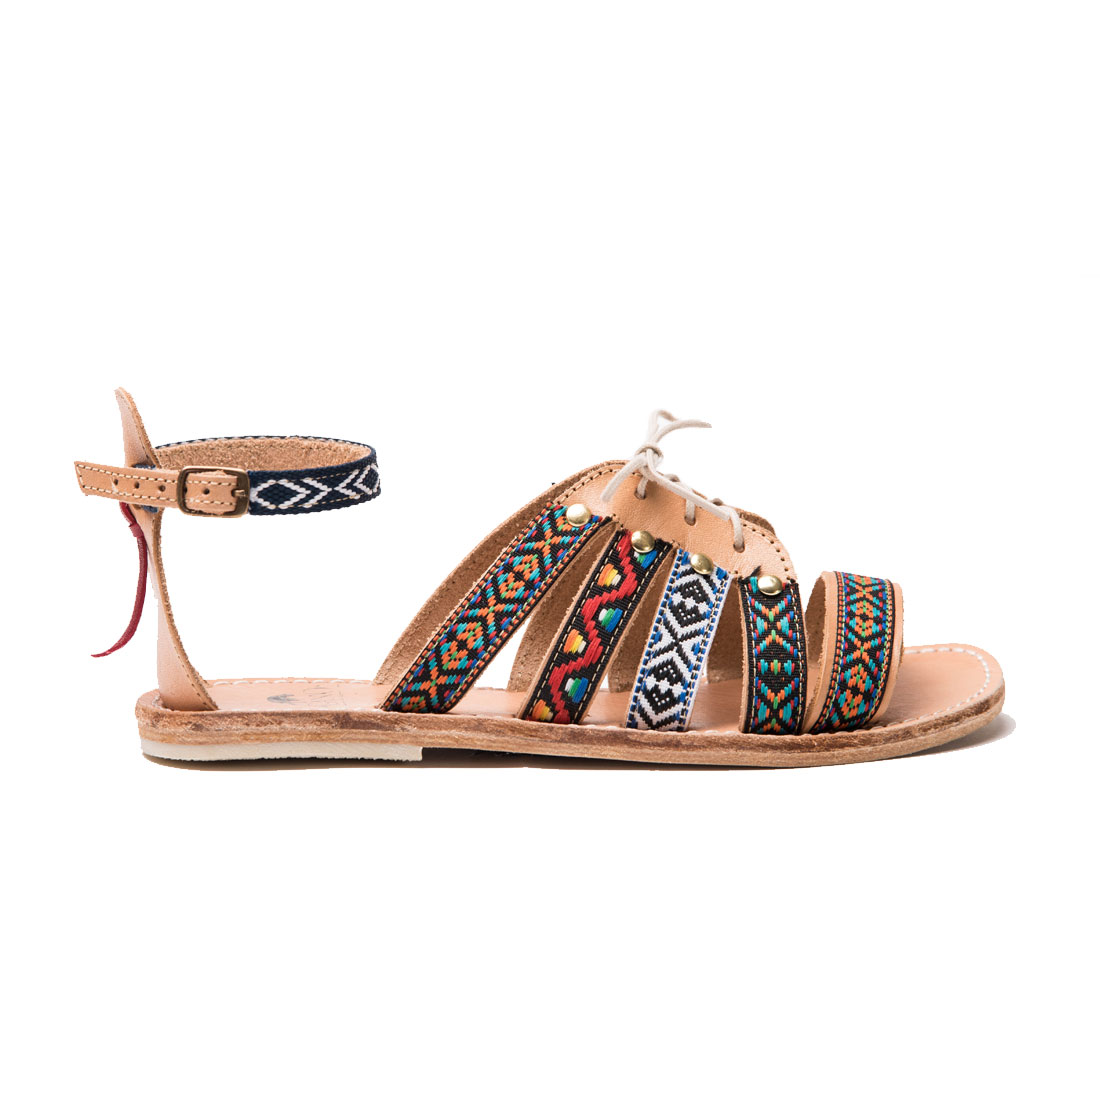 Huichol Sandal from Cano